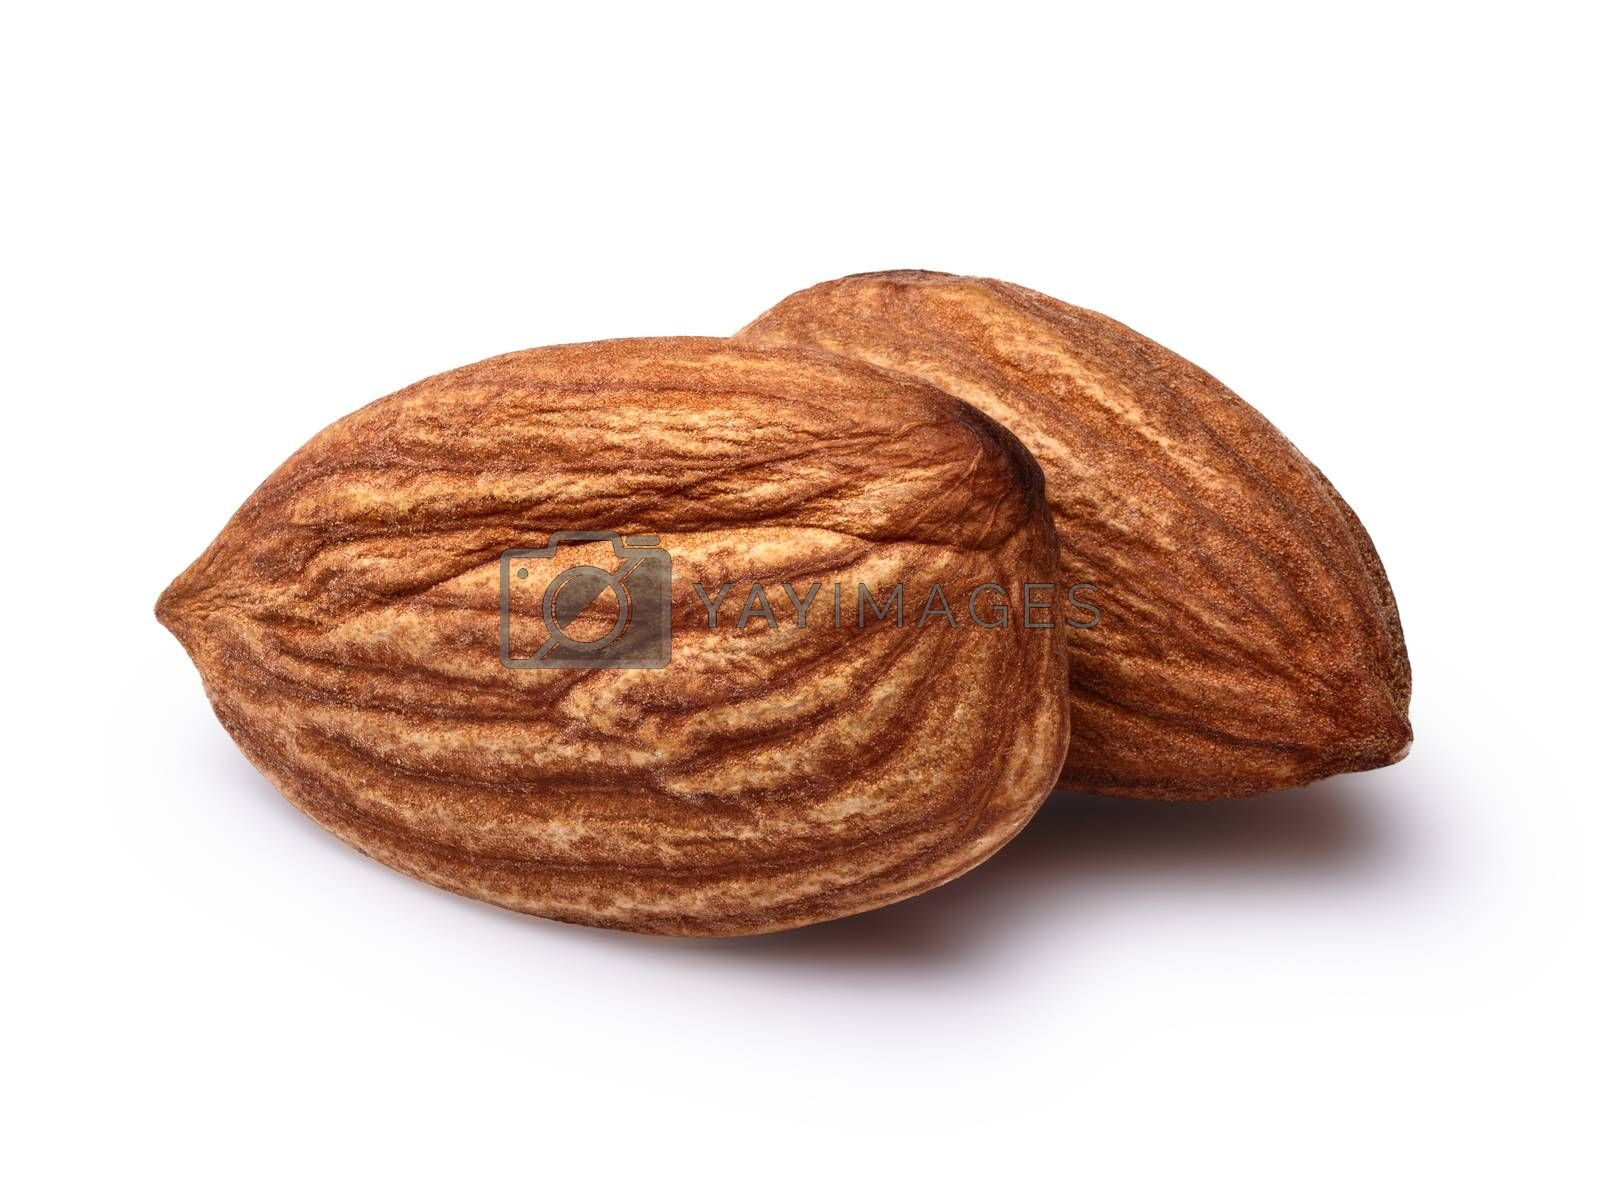 Two almonds without shell. Infinite depth of field,clipping paths